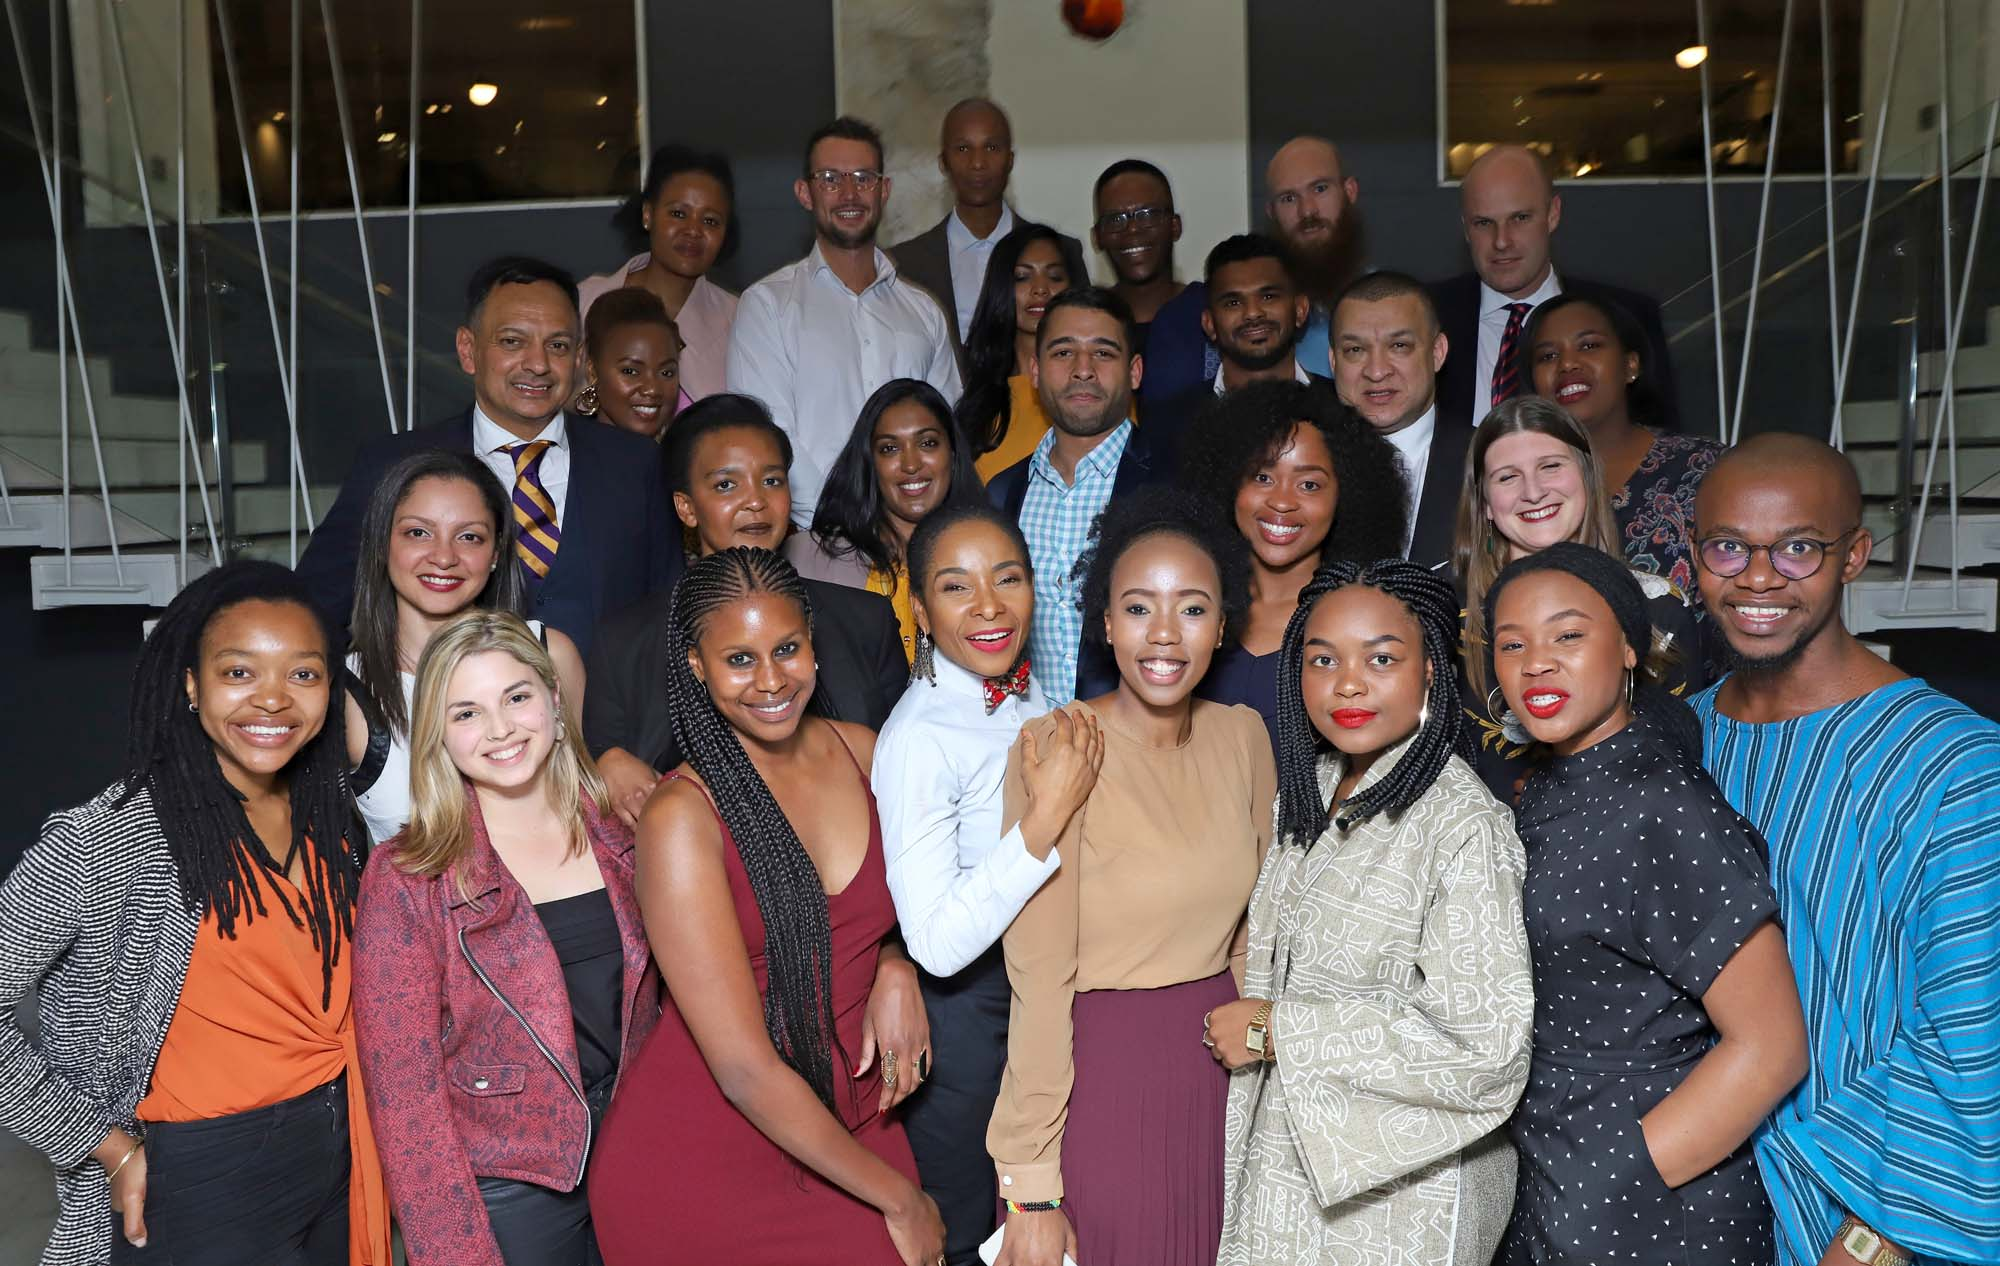 Some of the 41 UCT students, staff and alumni on the 2019 <i>Mail & Guardian</i>'s 200 Young South Africans list celebrate their achievements with VC Prof Mamokgethi Phakeng at the 15 On Orange Hotel on 30 August.